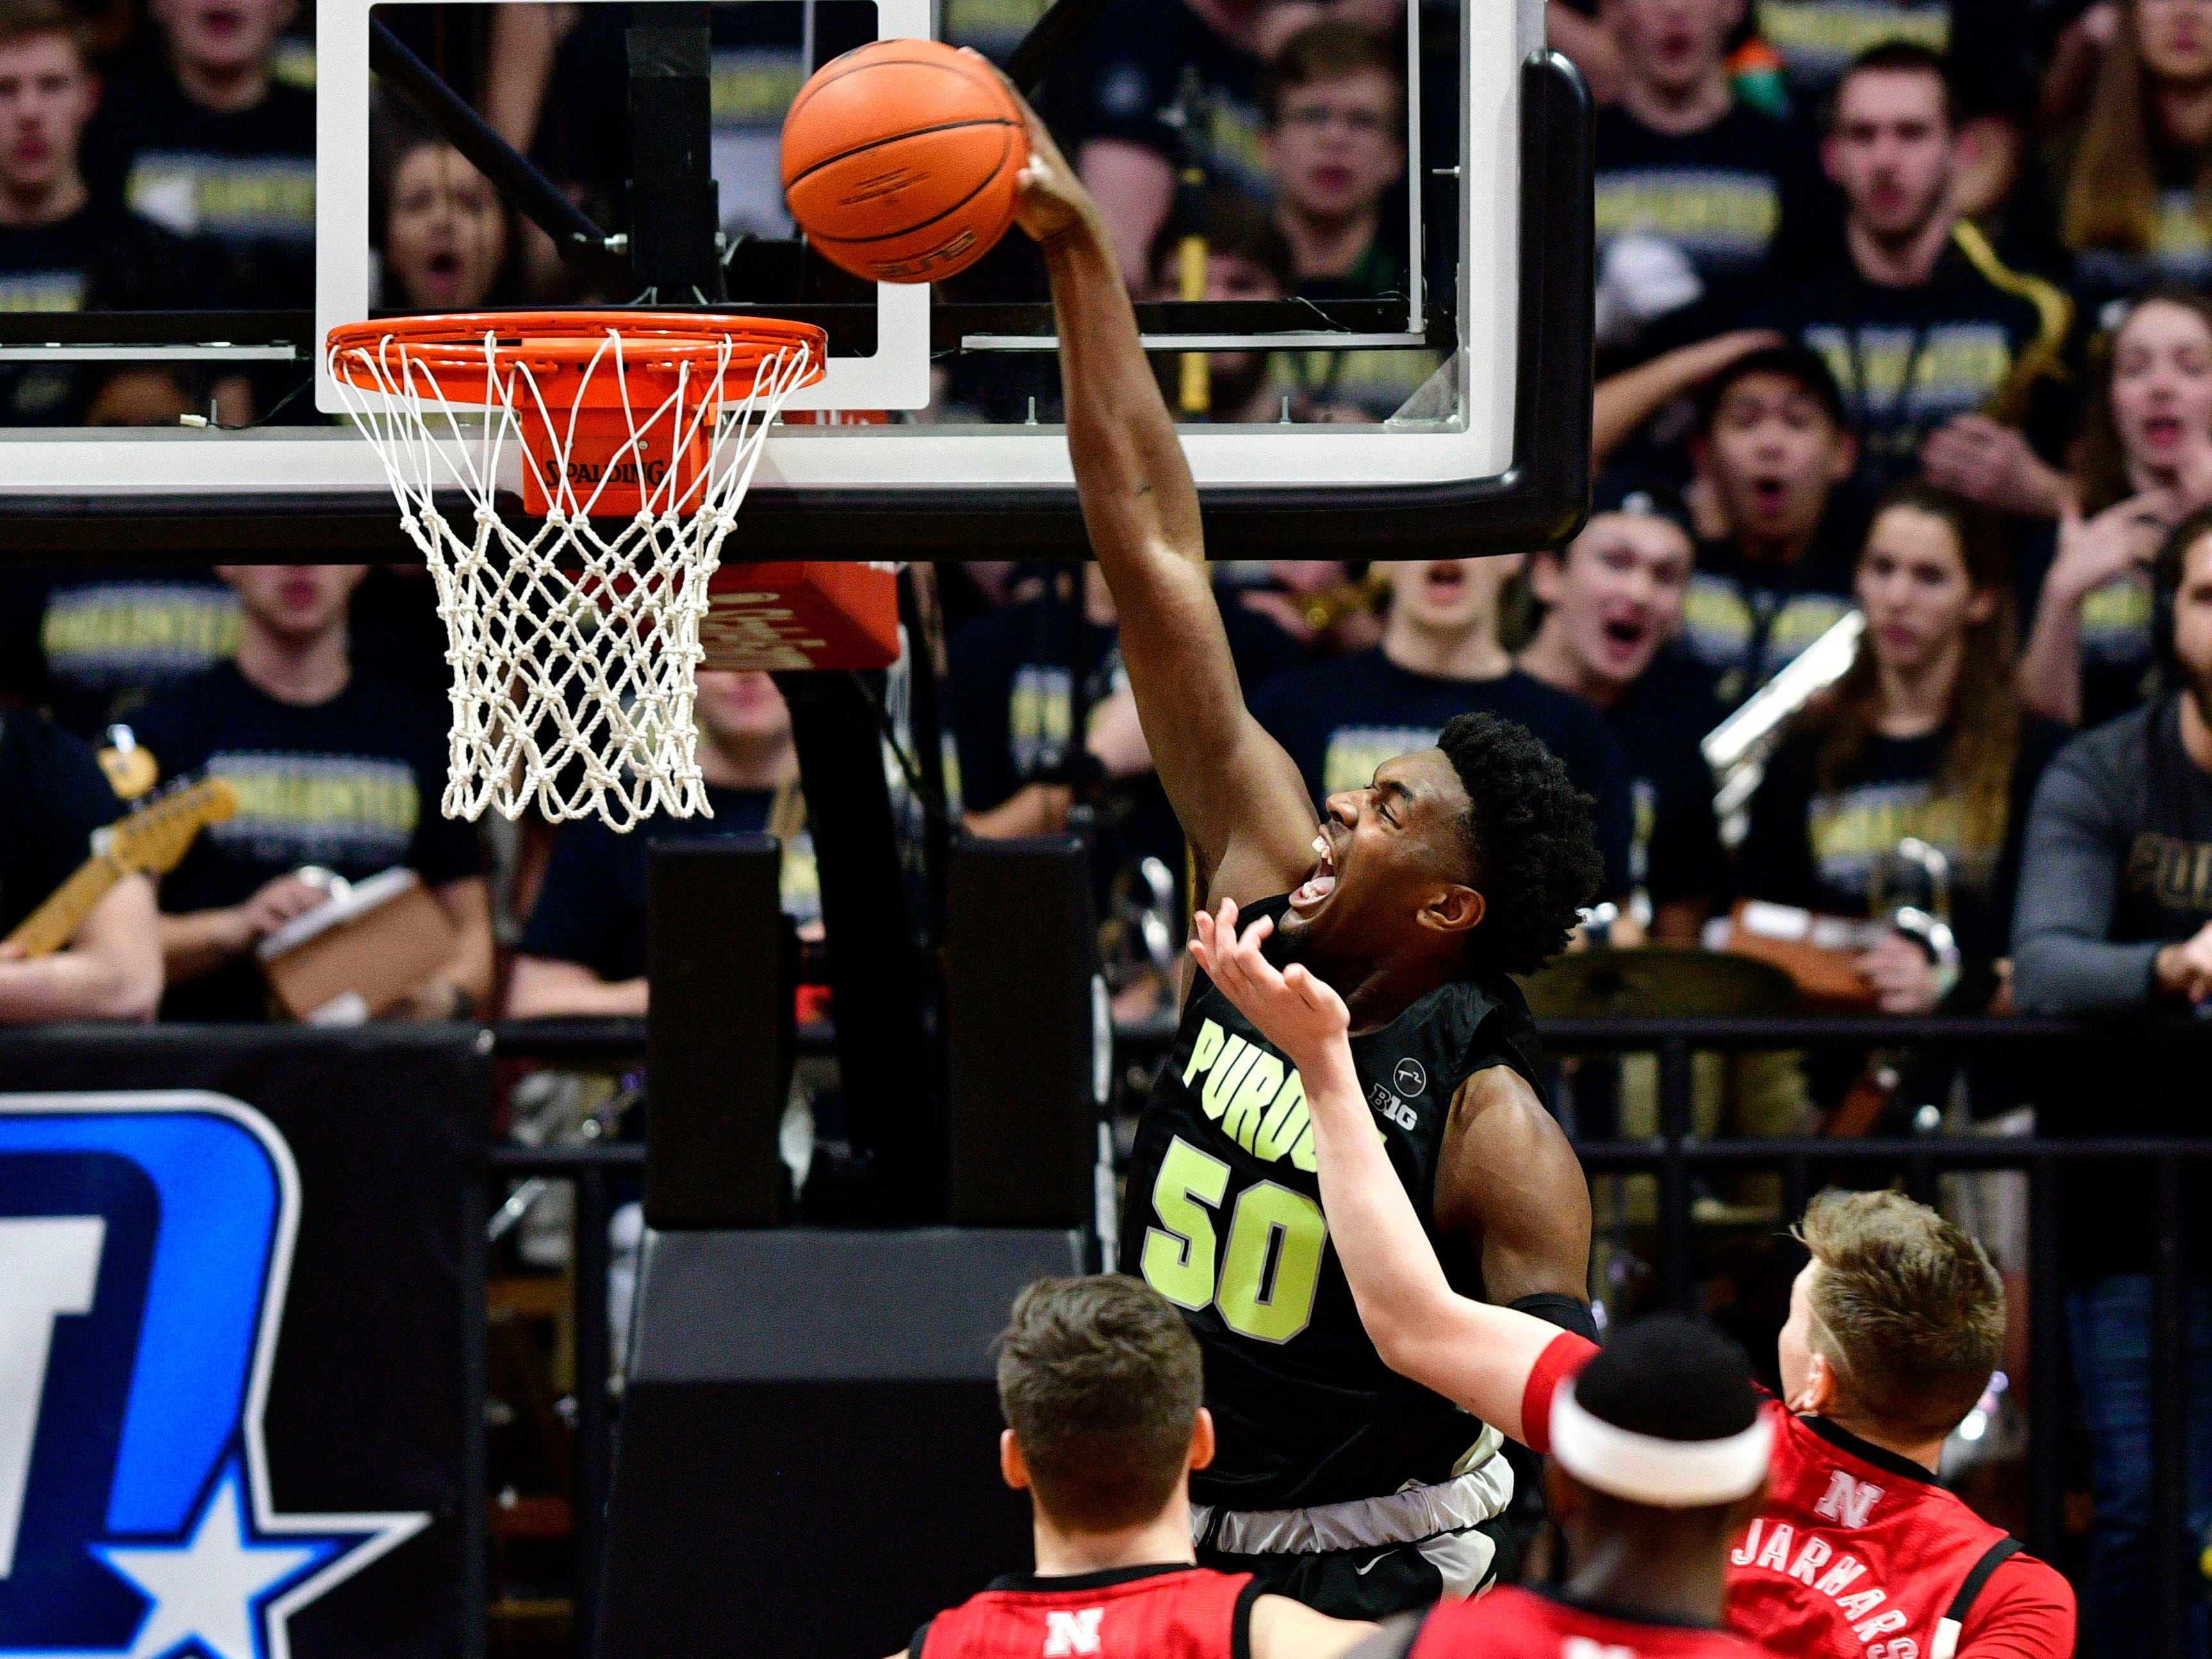 Purdue Boilermakers forward Trevion Williams (50) dunks the ball against several Nebraska Cornhuskers during the first half of the game at Mackey Arena.